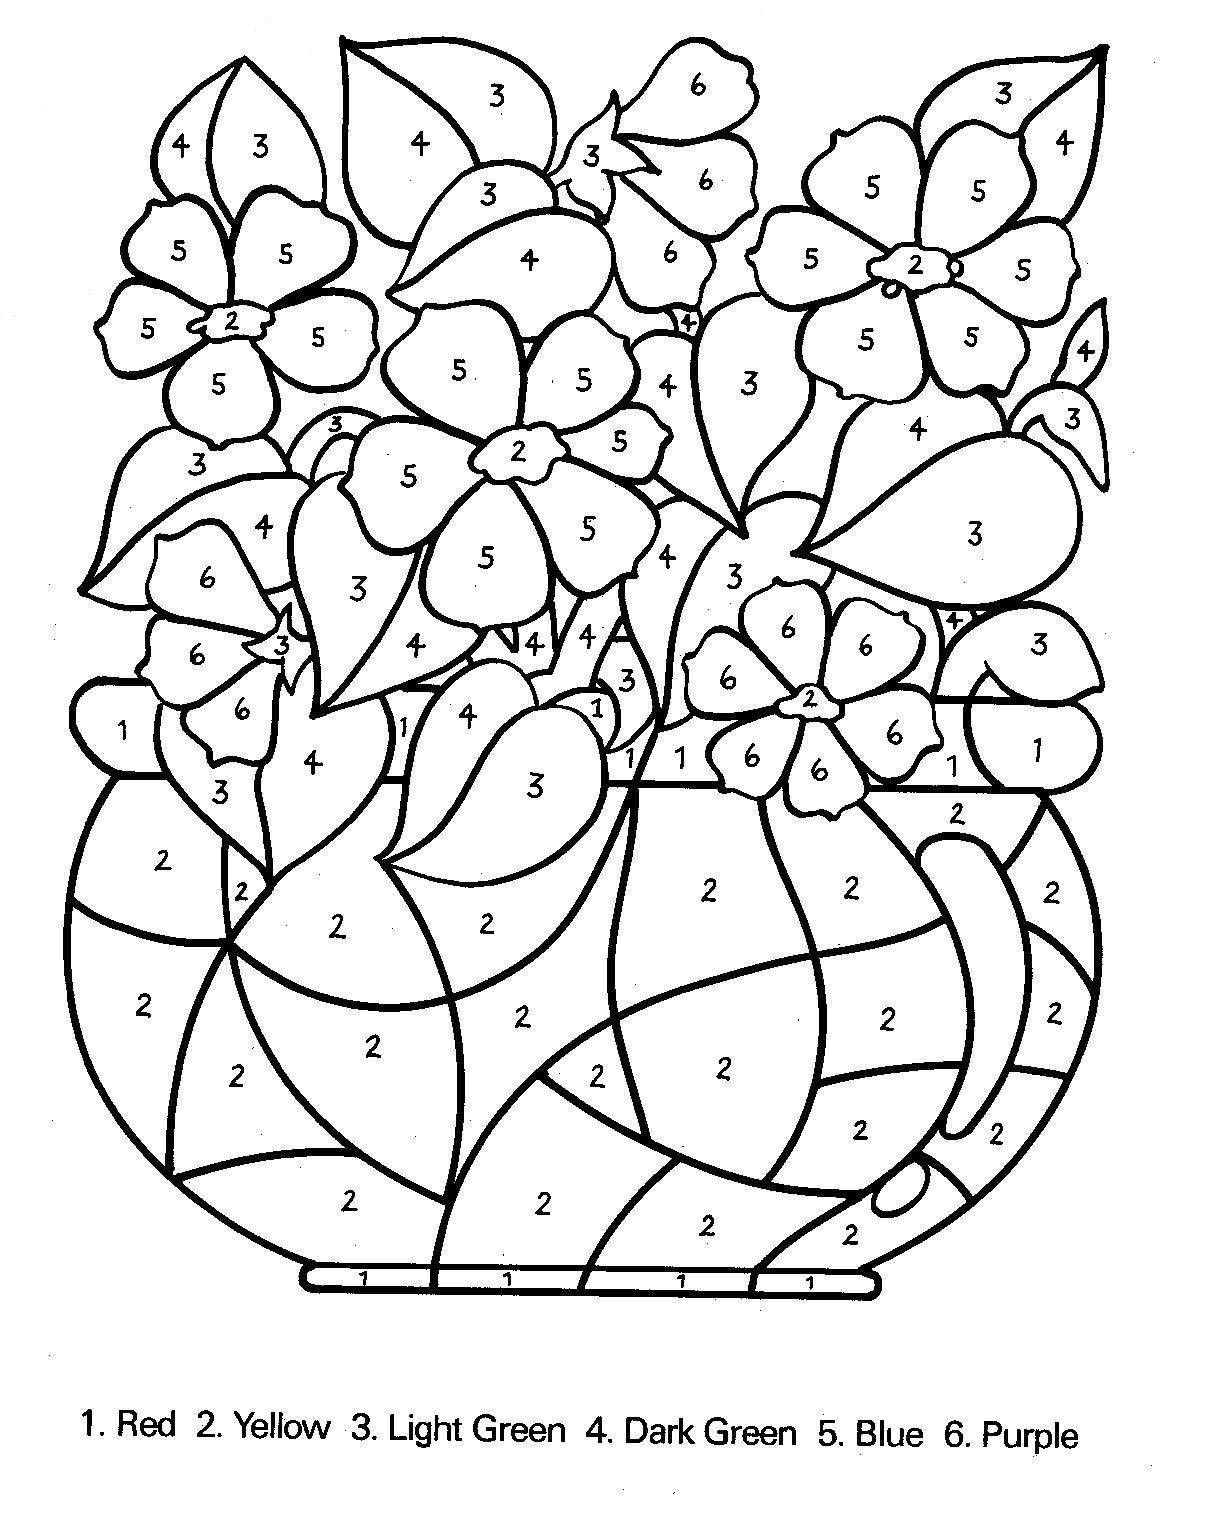 Coloring worksheet by numbers - Coloring Pages For Kids Printable Numbers